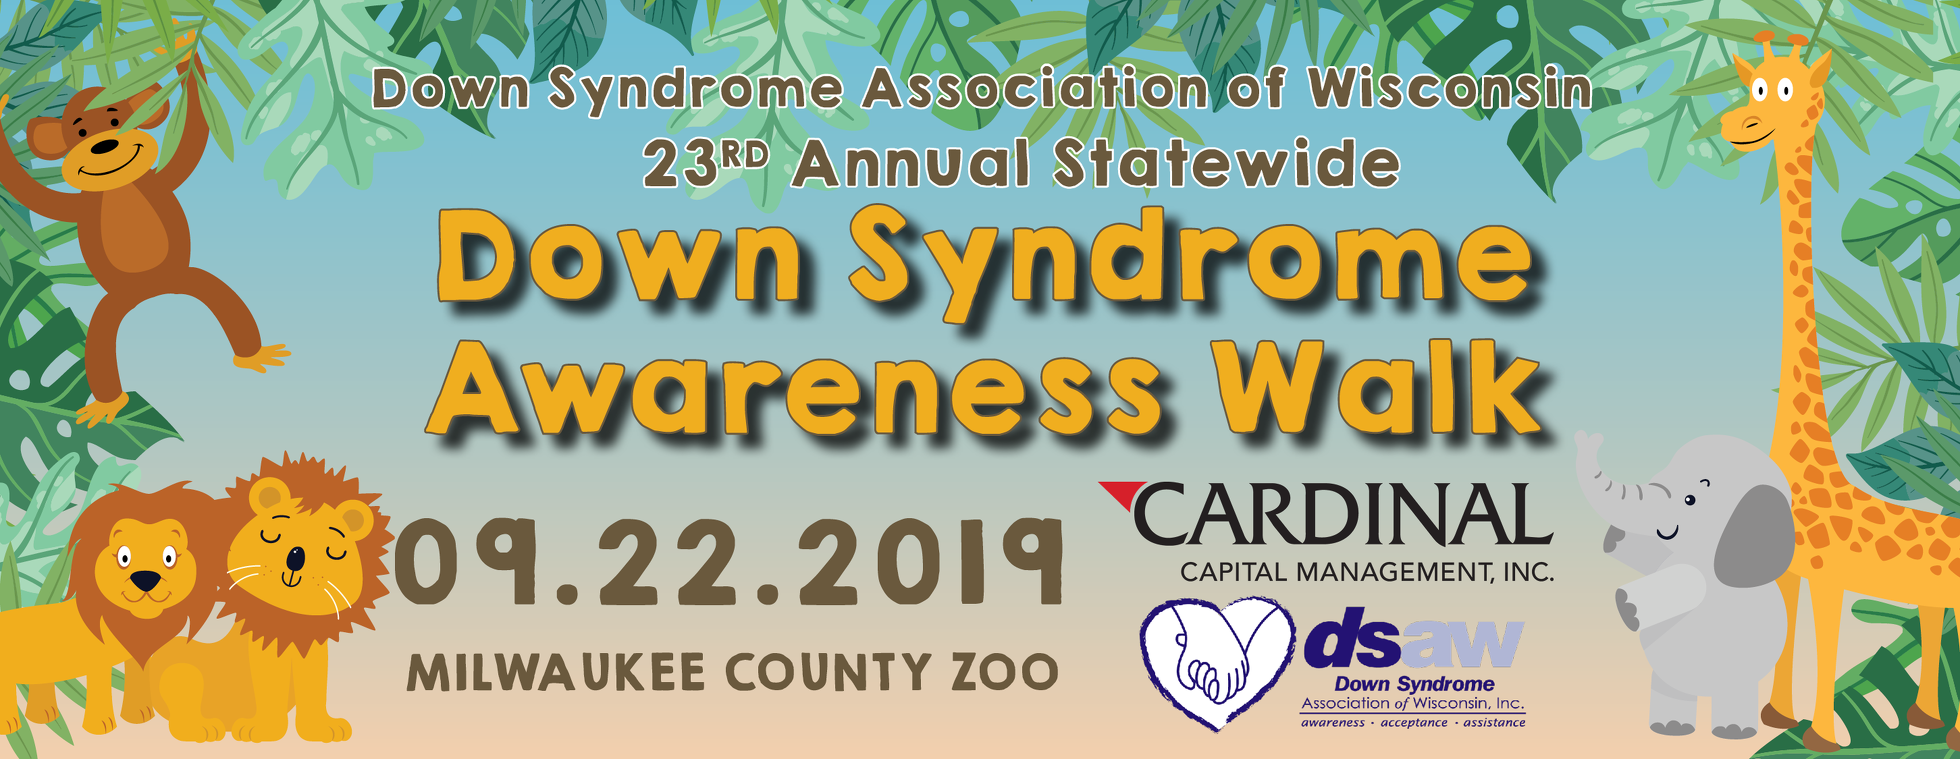 23rd Annual Statewide Down Syndrome Awareness Walk